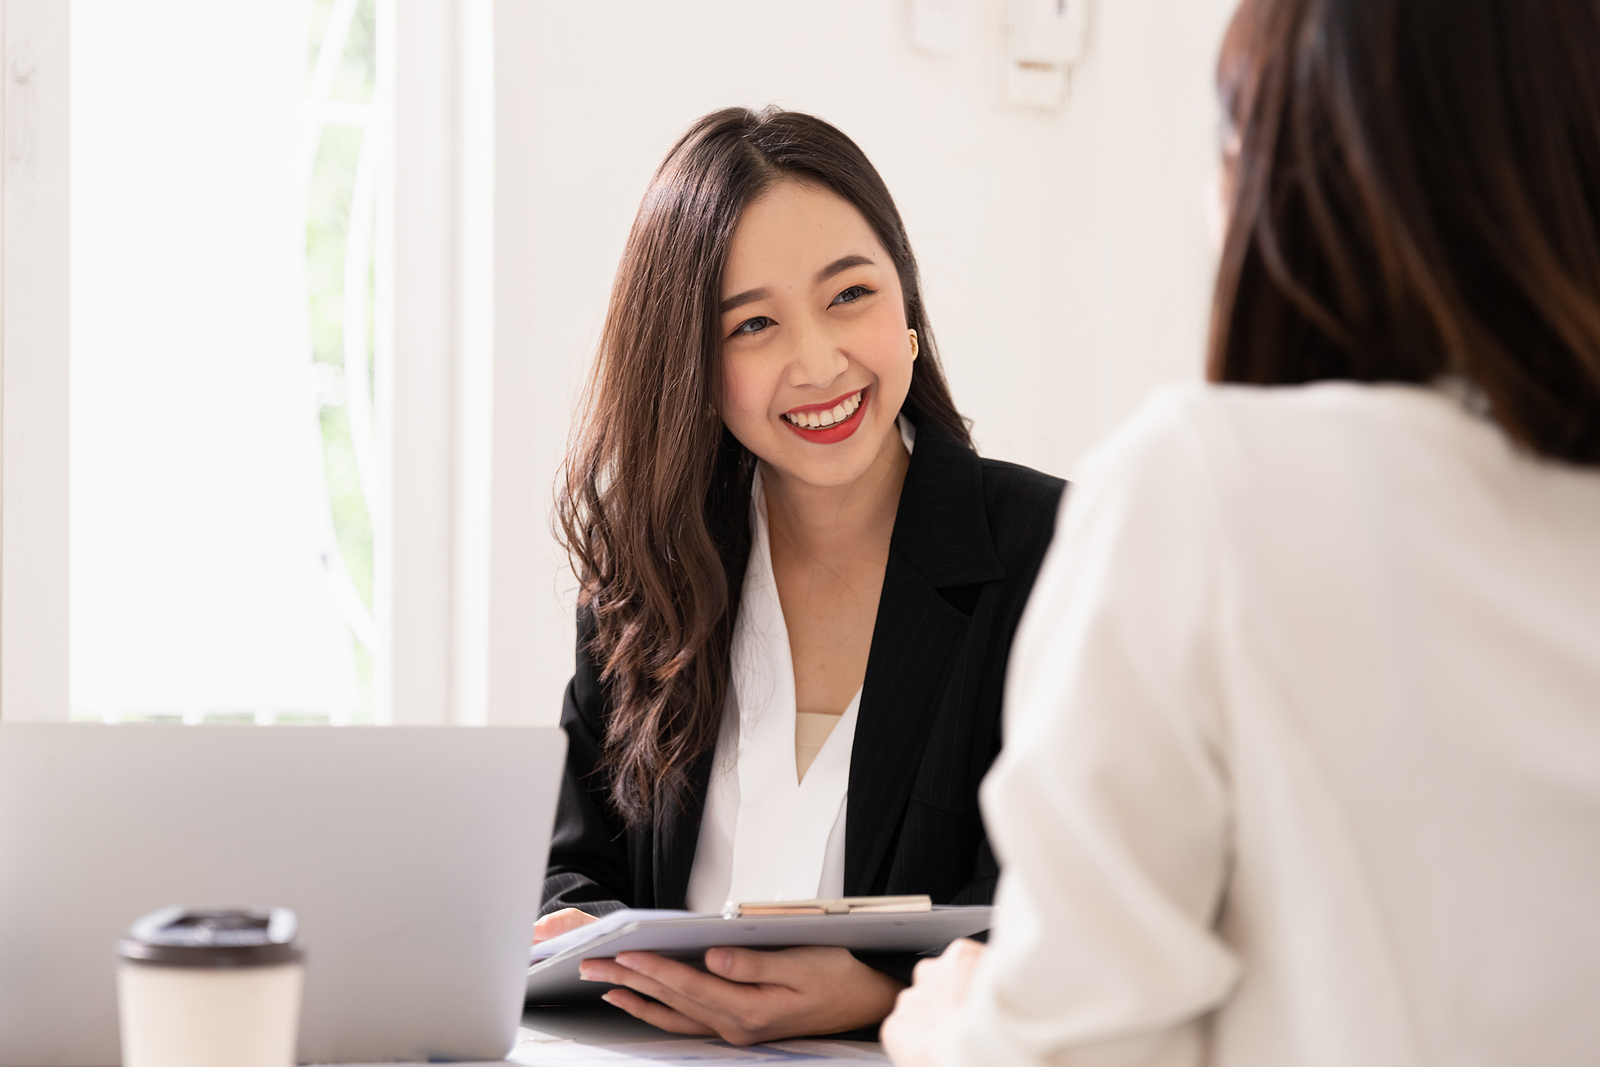 Job Candidate Discusses Her Salary Expectations in a Job Interview